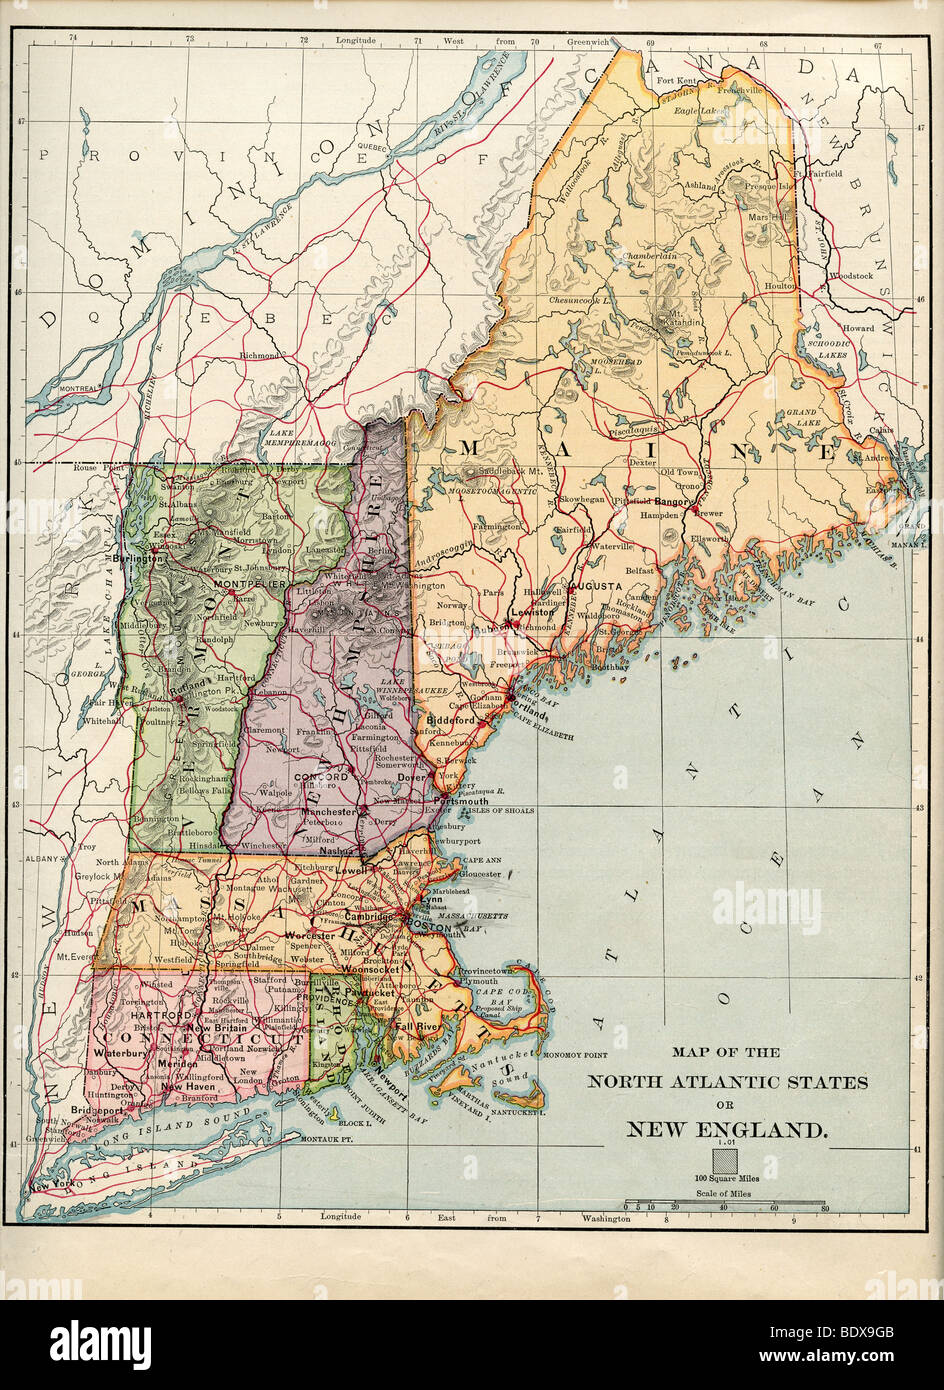 New England Map Stockfotos & New England Map Bilder - Alamy